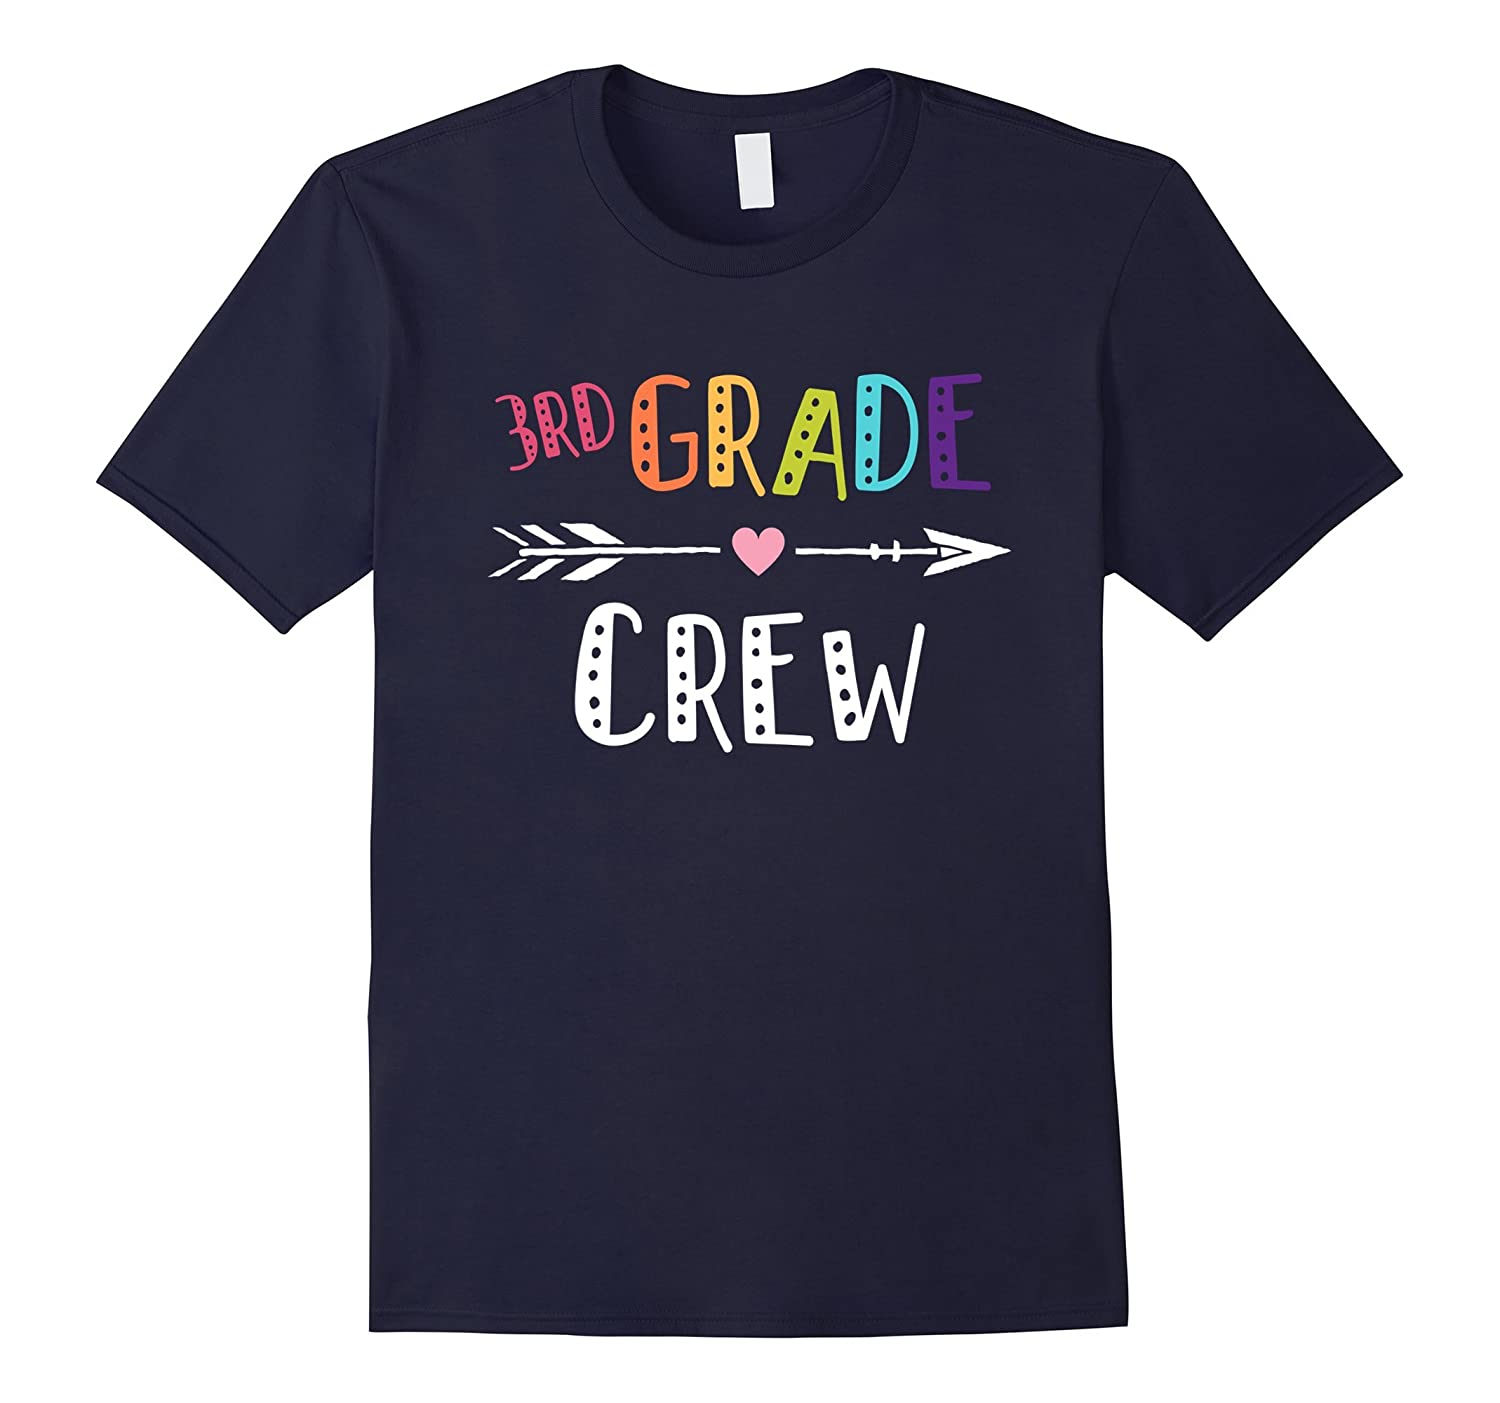 3rd Grade Crew Teacher T-Shirt 1st Day of School-FL